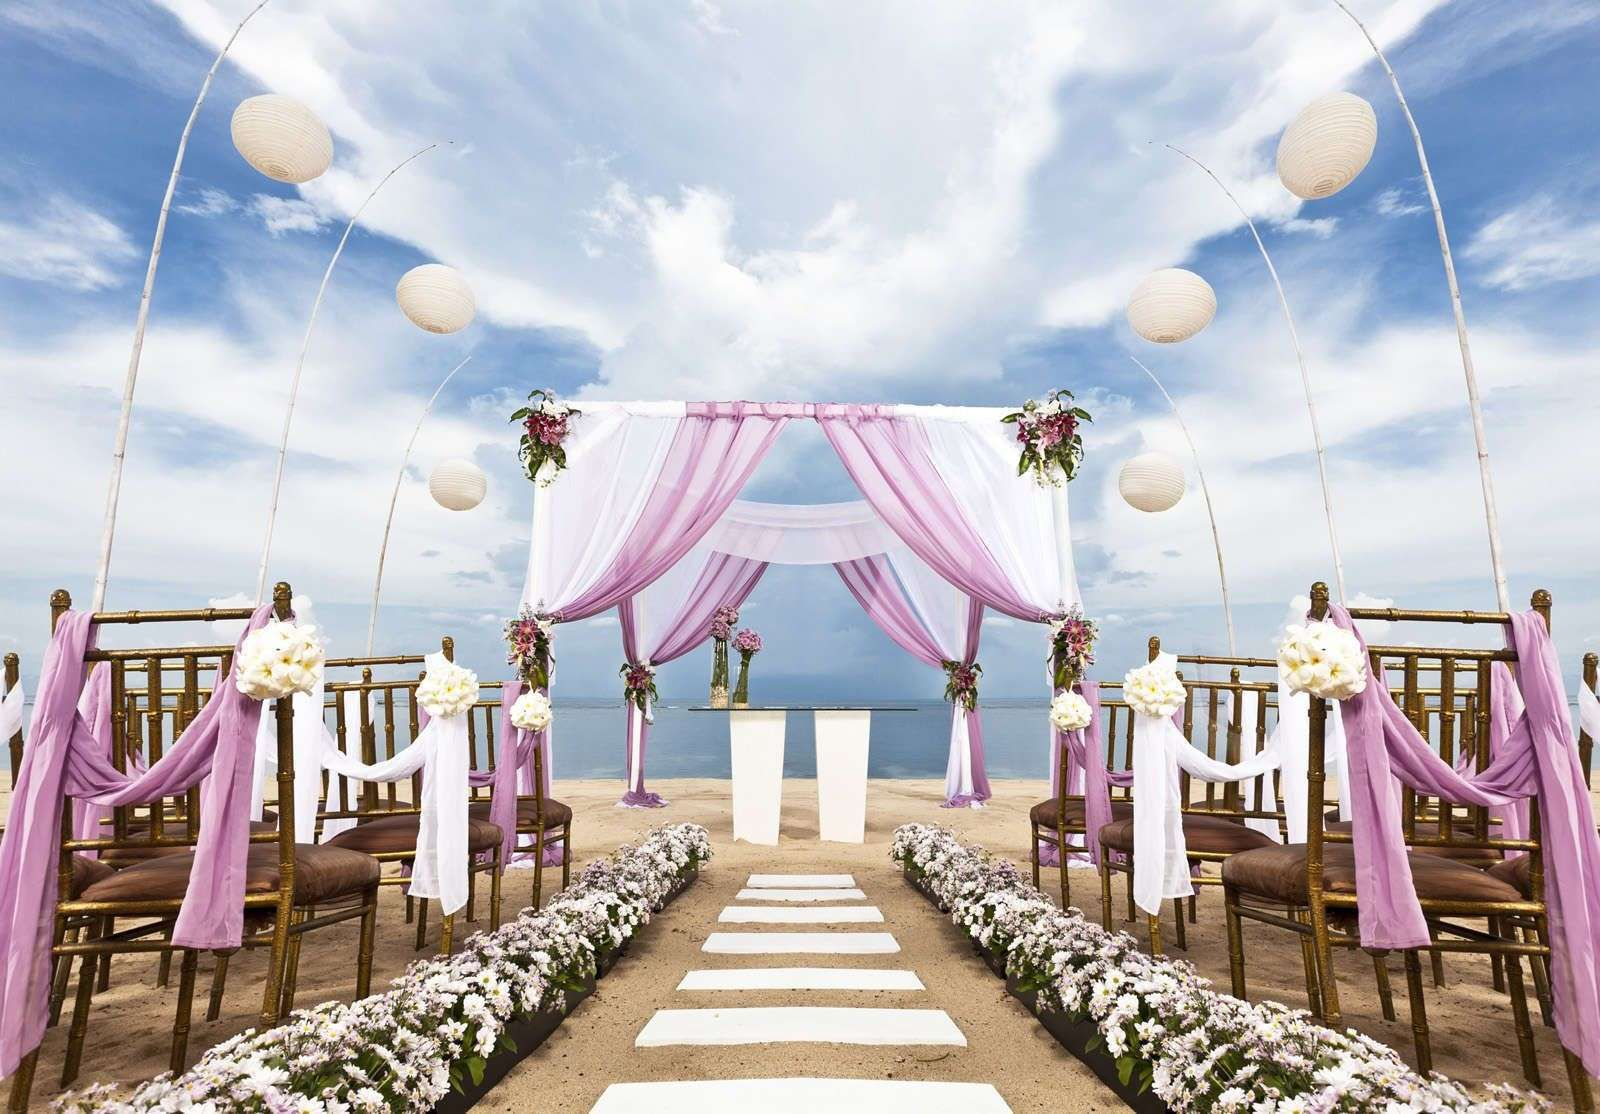 Beach wedding venues auckland 1080p hd pictures be inspired beach wedding venues auckland 1080p hd pictures junglespirit Image collections